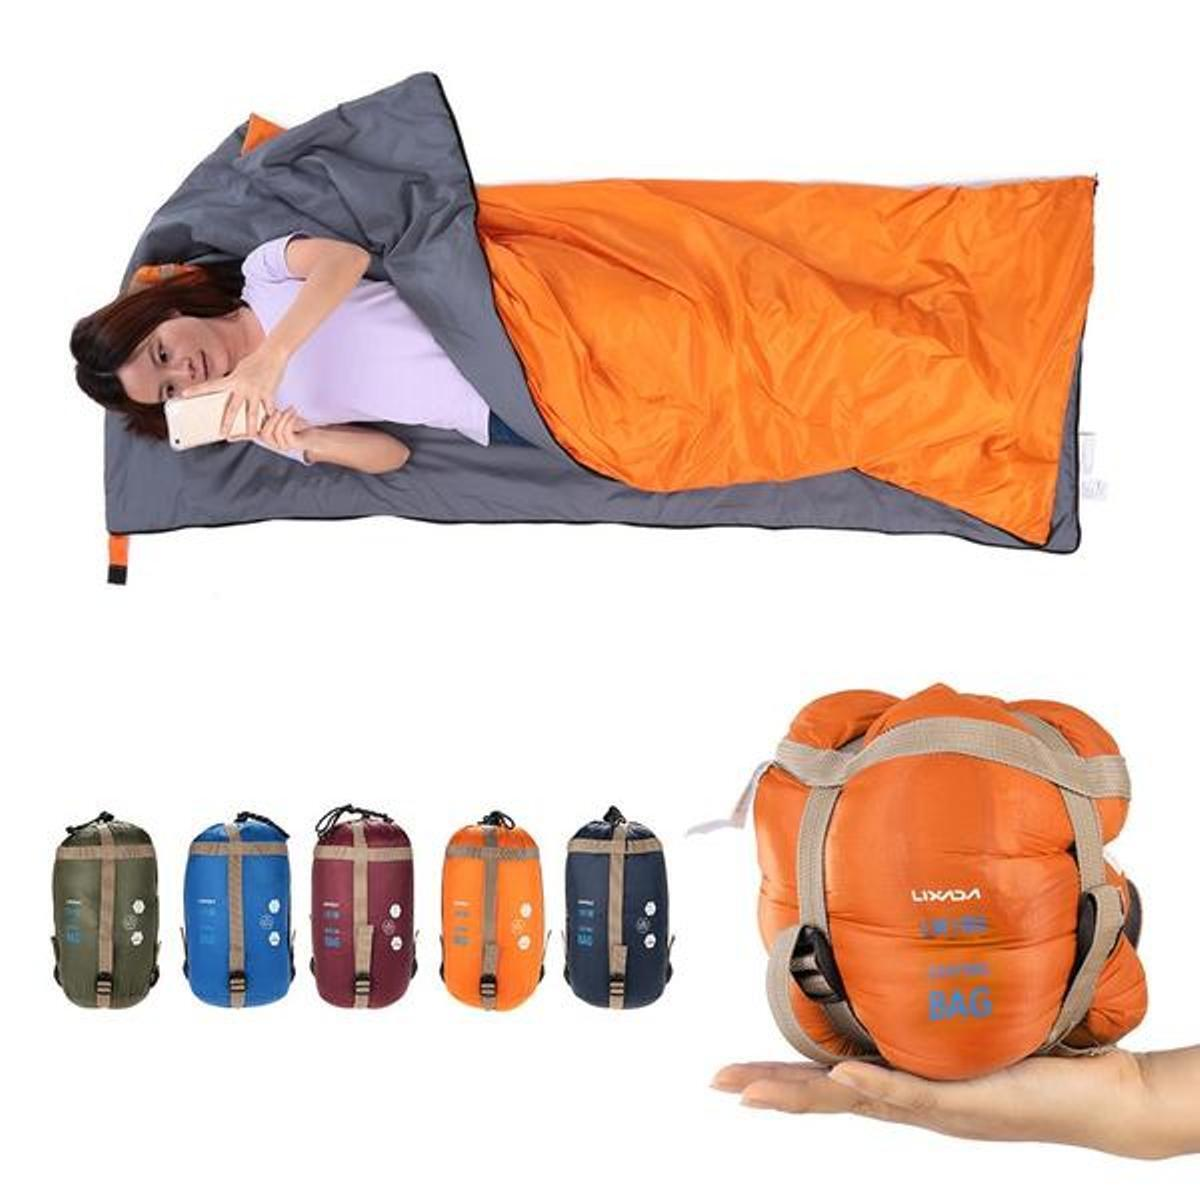 Ultra Lightweight &  Portable Envelope Sleeping Bag  order now with big discount & free delivery